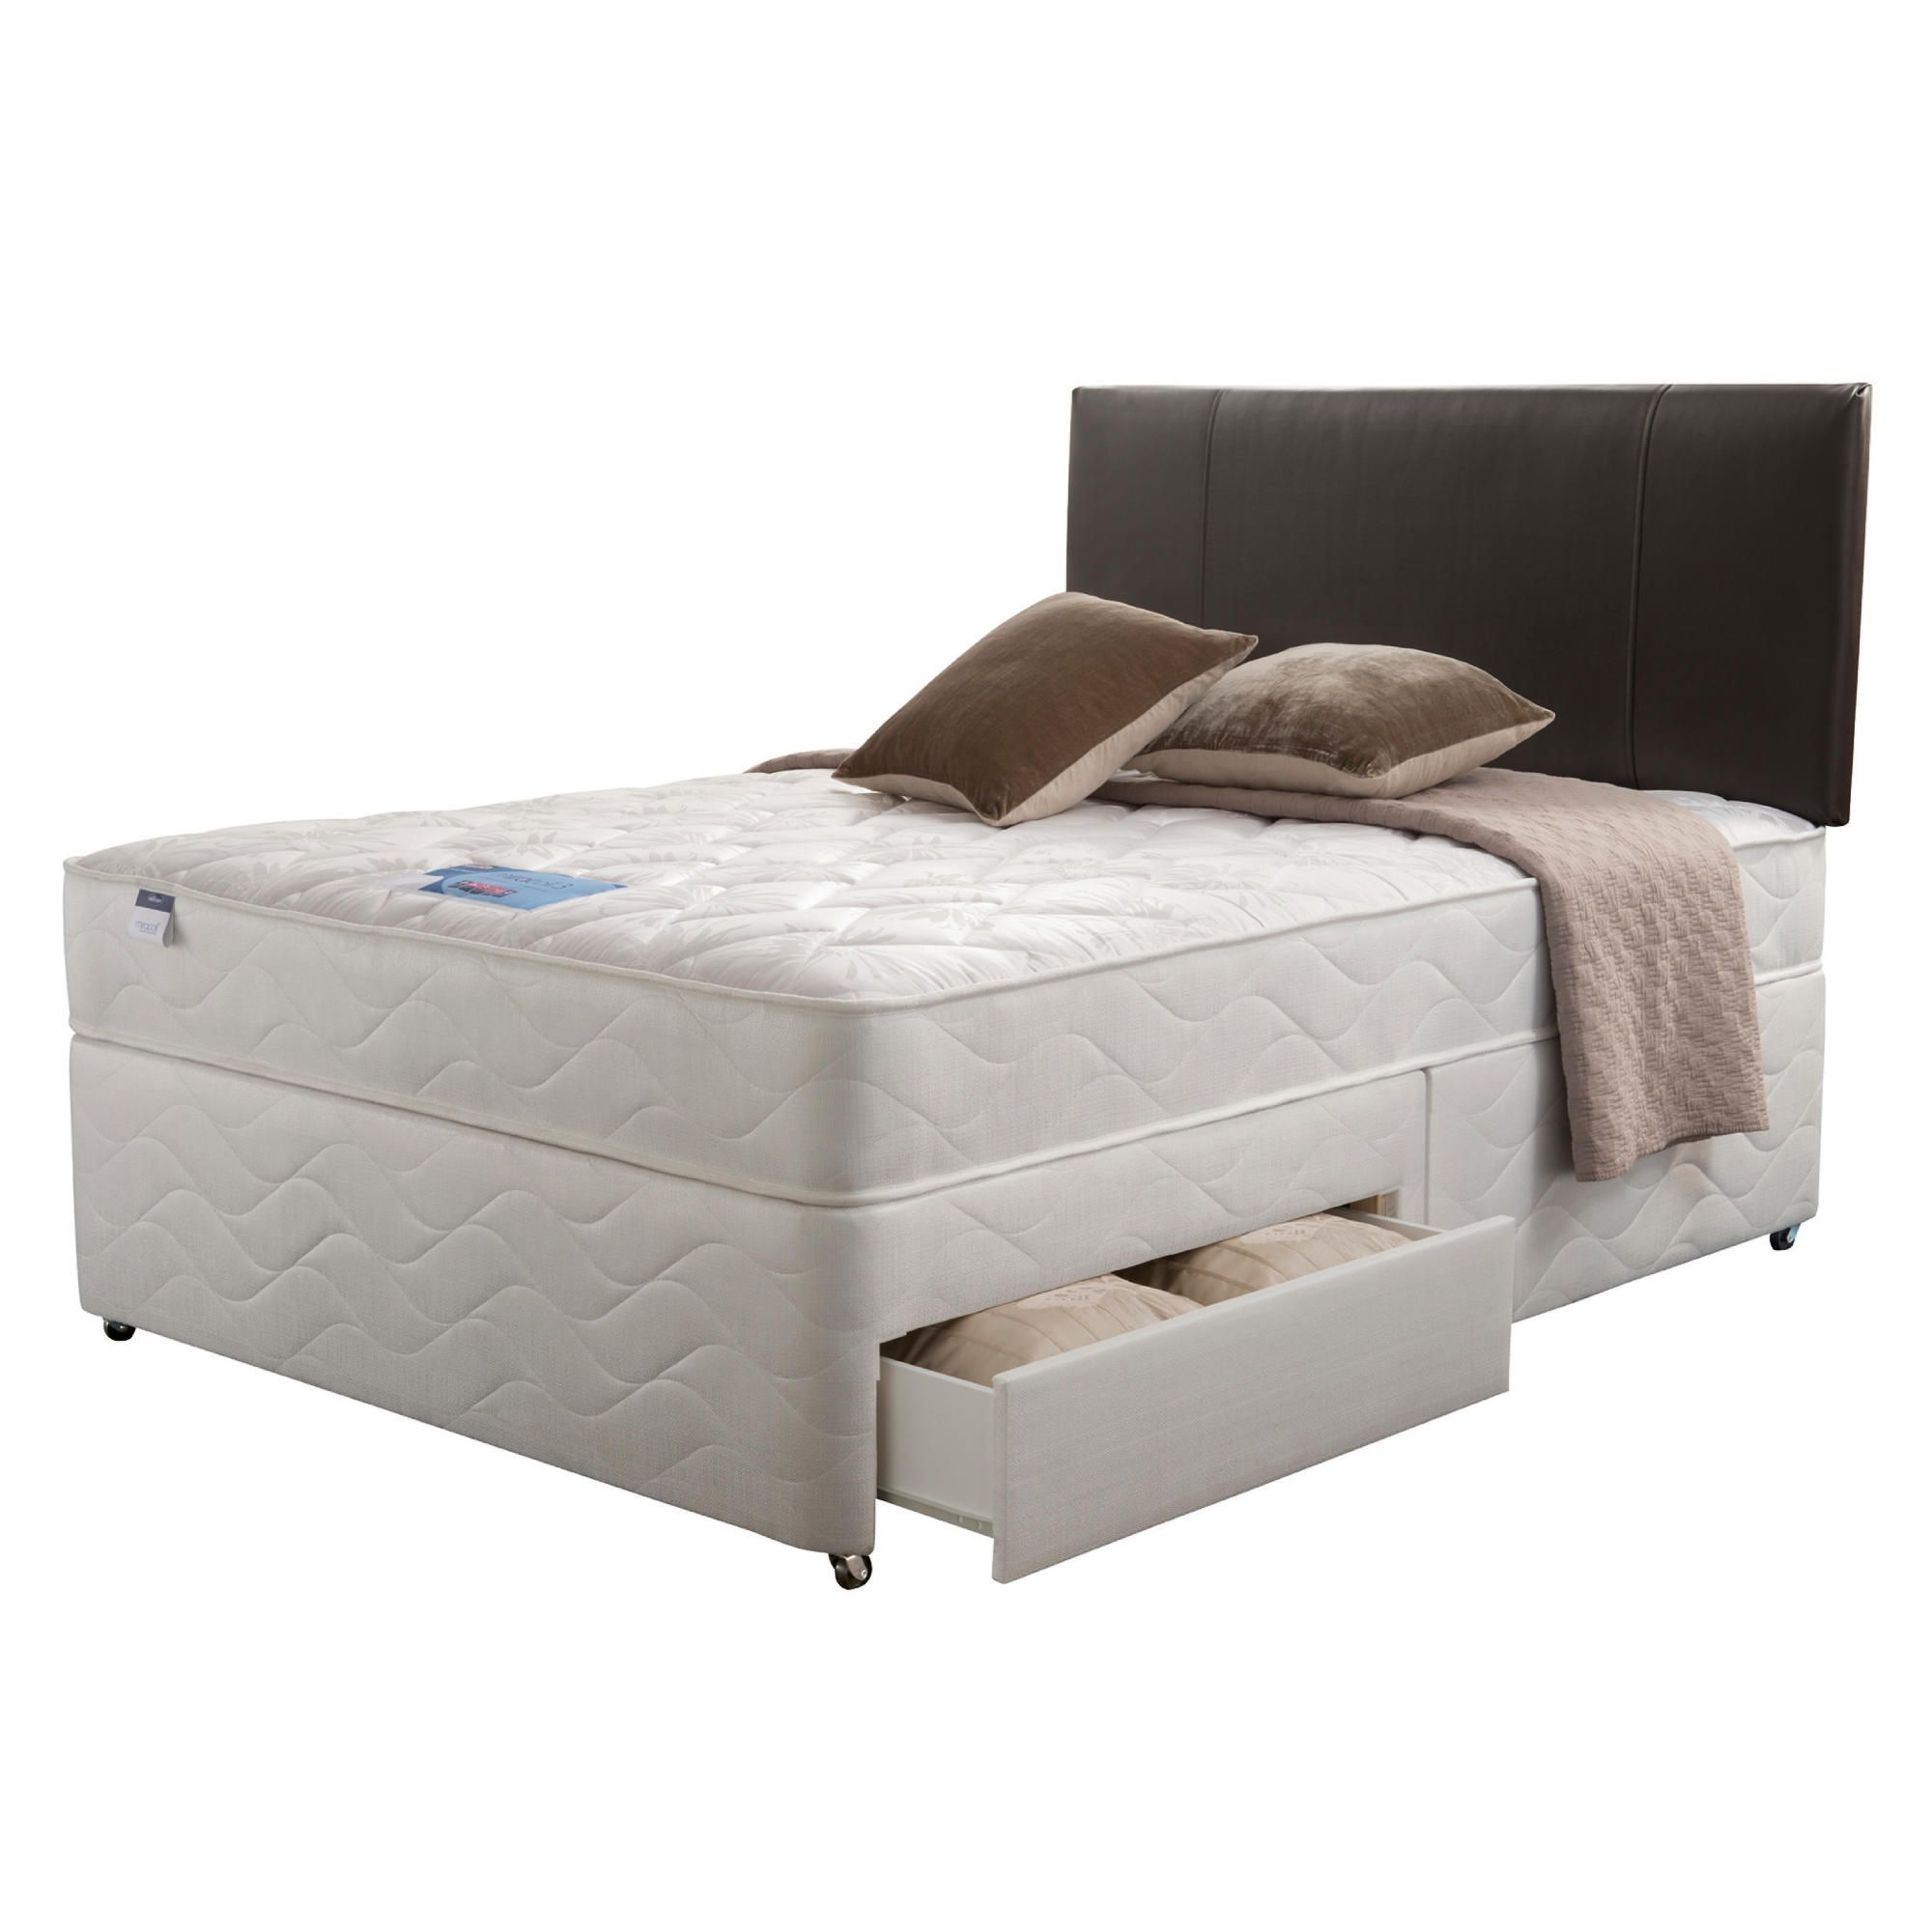 Silentnight Miracoil Kingston Double 4 Drawer Divan set at Tesco Direct